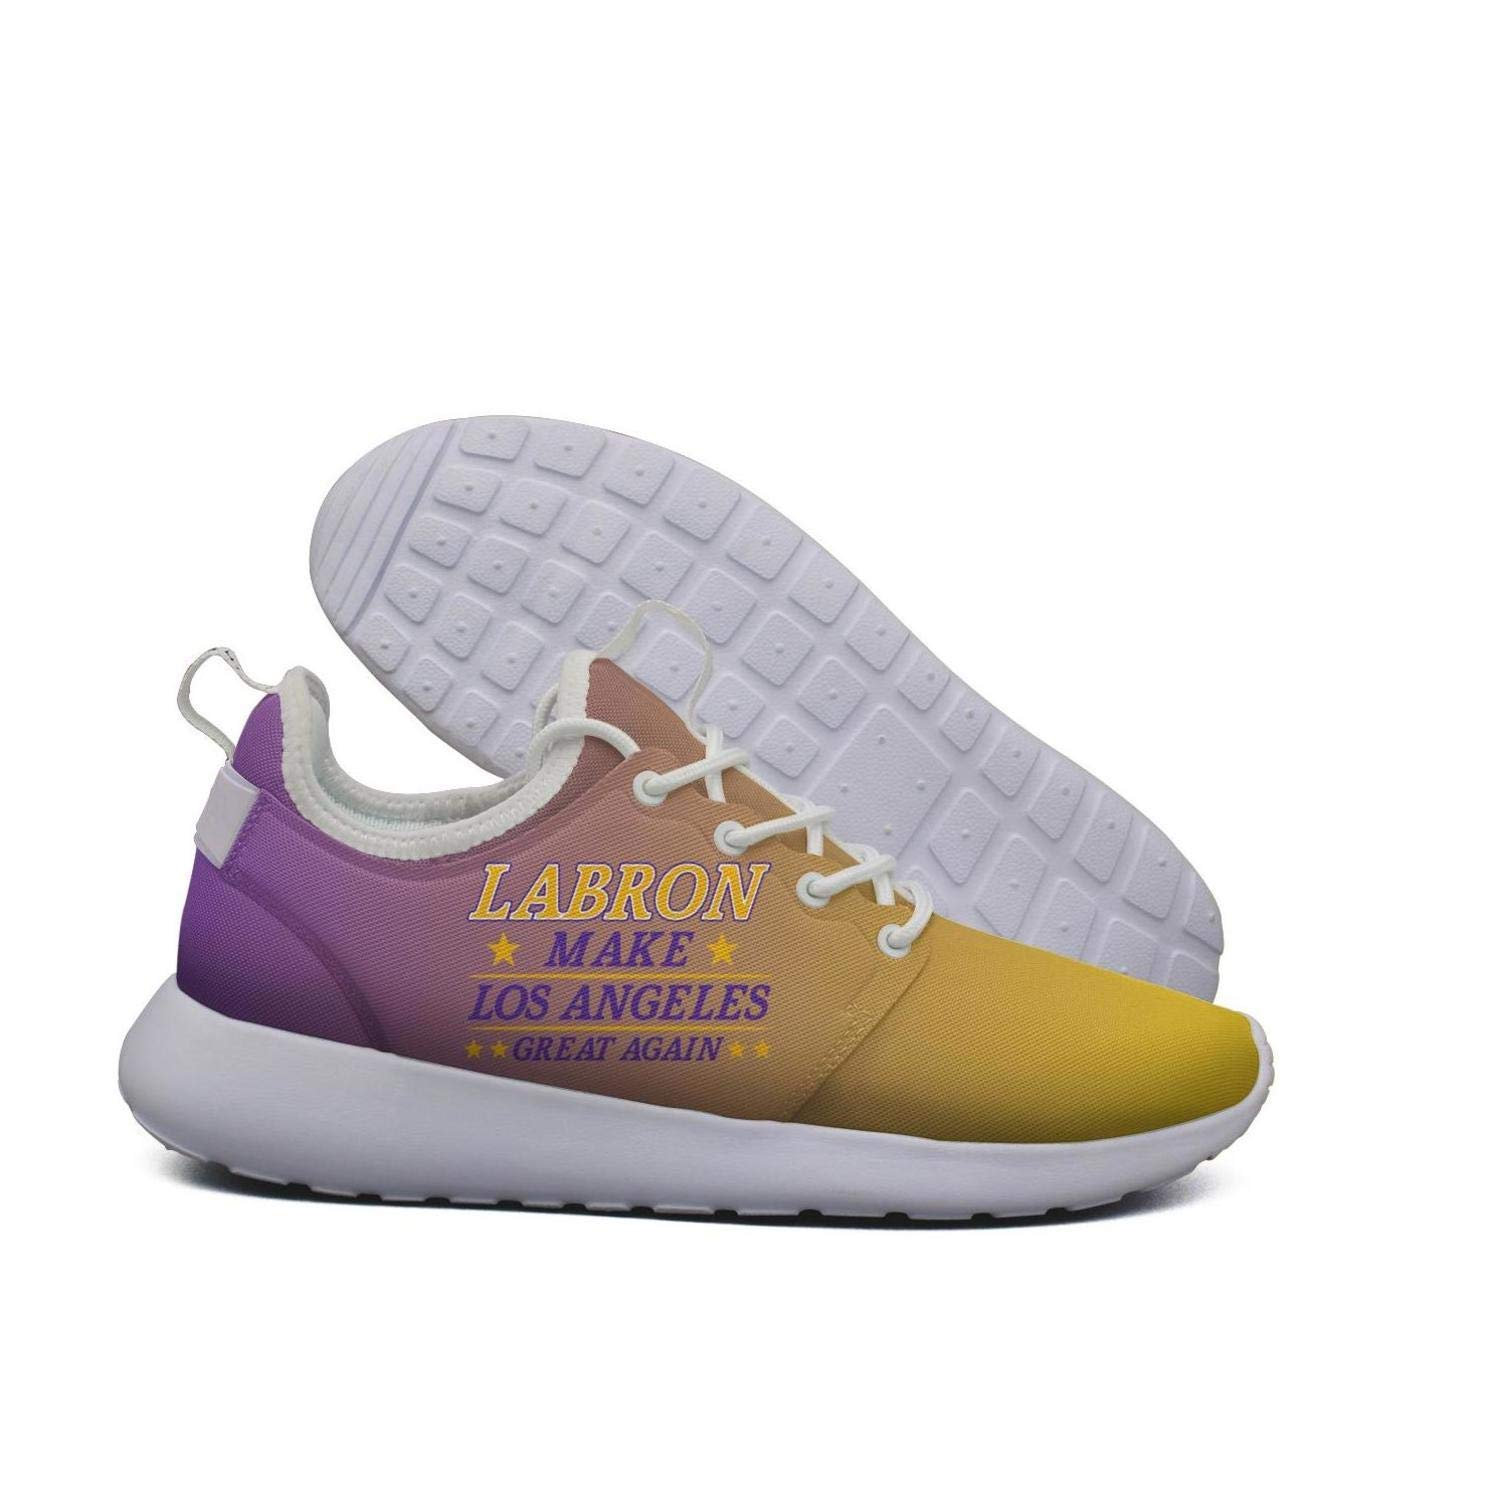 Womens Roshe Two Lightweight labron_Make_L.A_Great Again Breathable Fashion Sneakers mesh Shoes